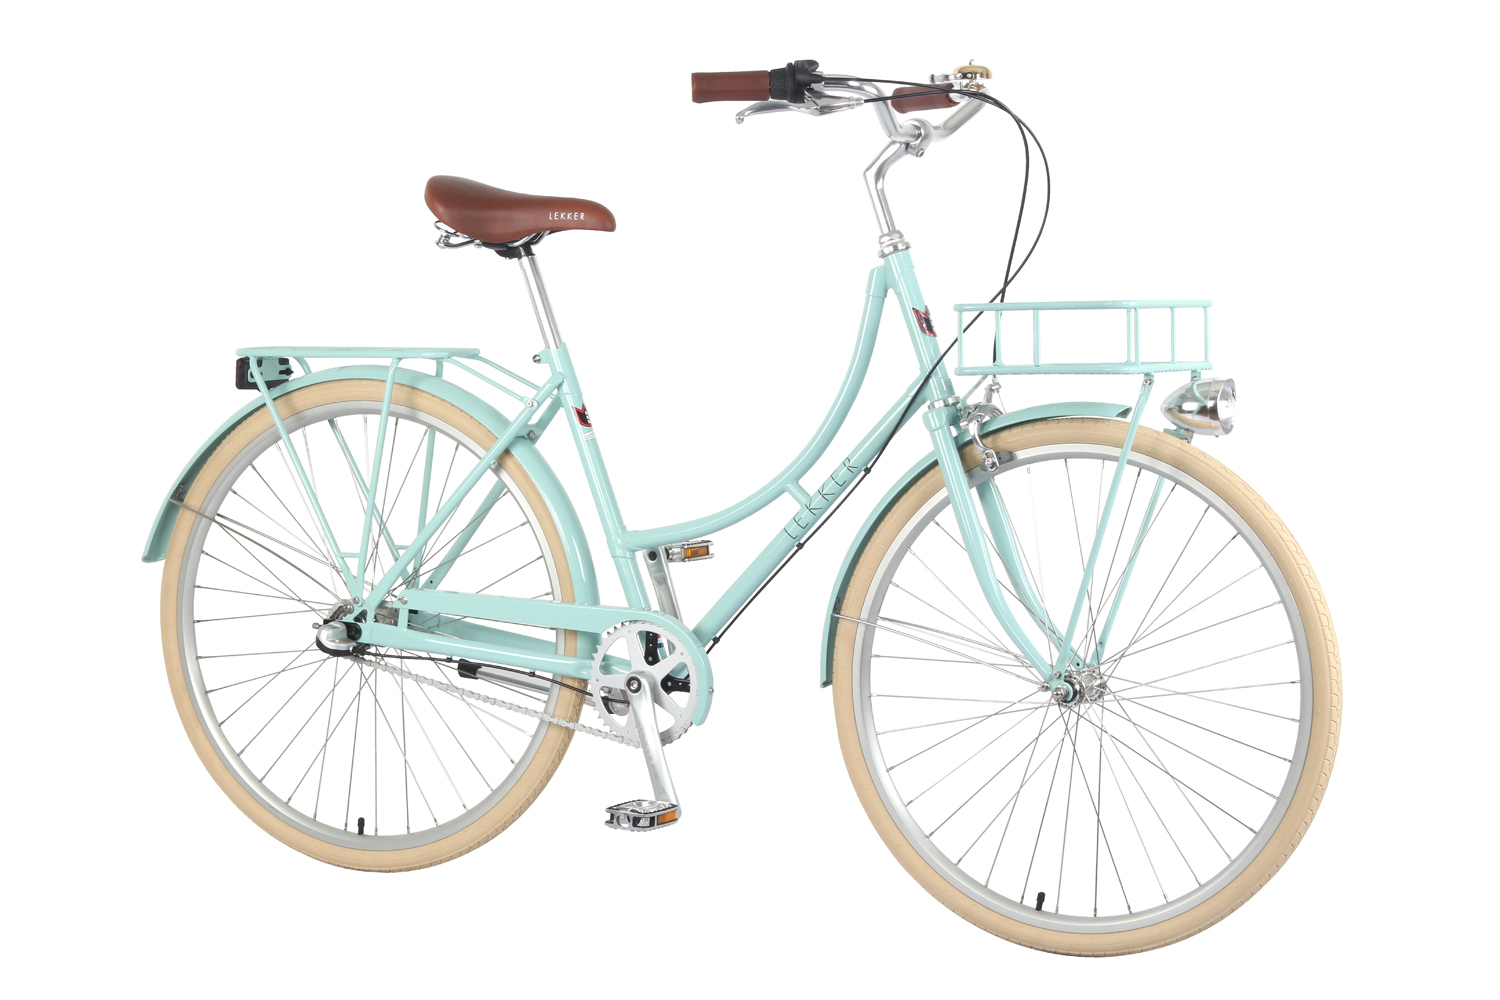 Vintage Bicycle Gallery 89